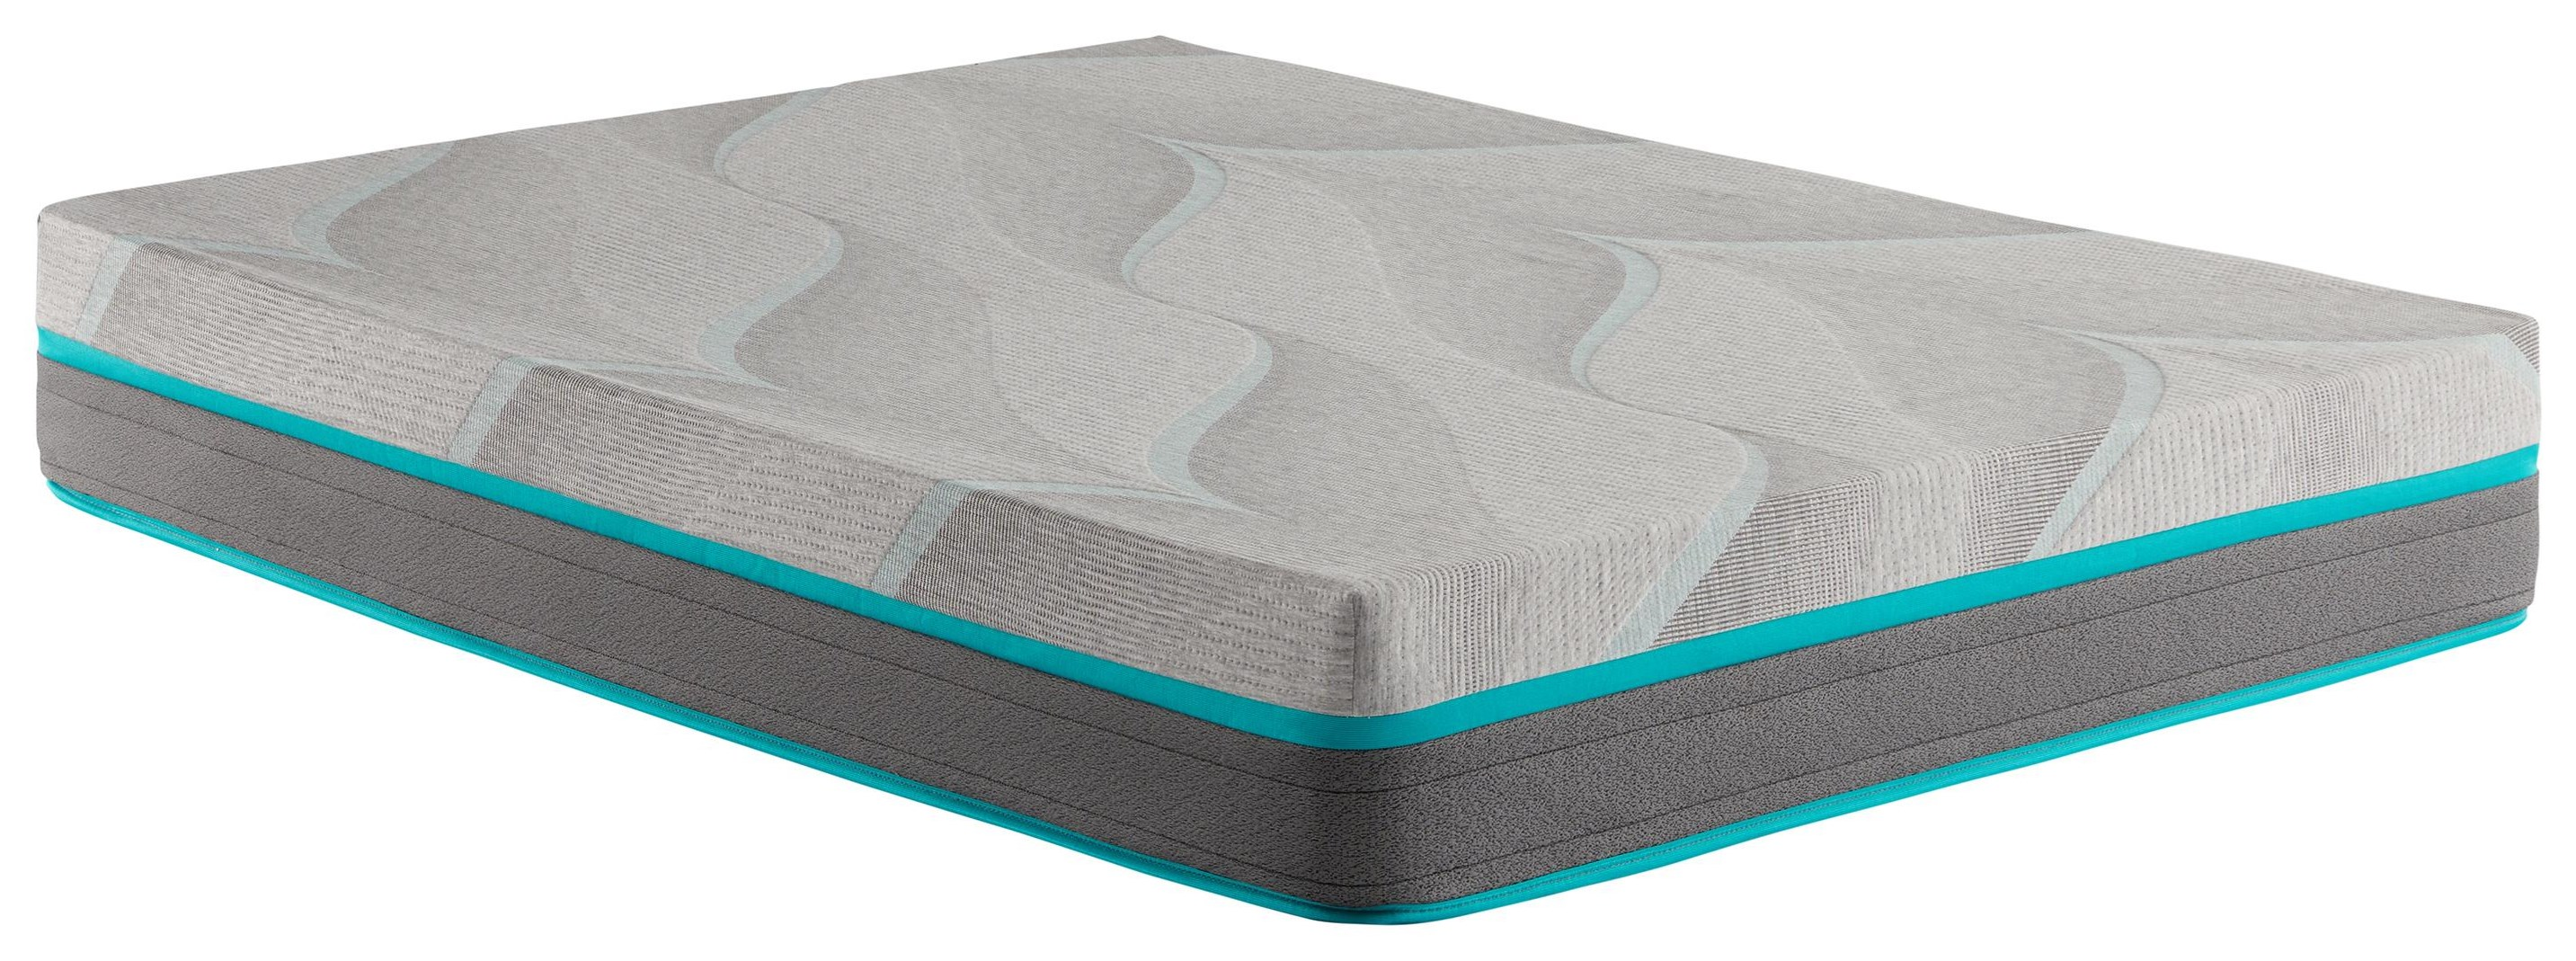 "William Land Park 10"" Twin XL Hybrid Cushion Firm Mattress by Corsicana at Beck's Furniture"